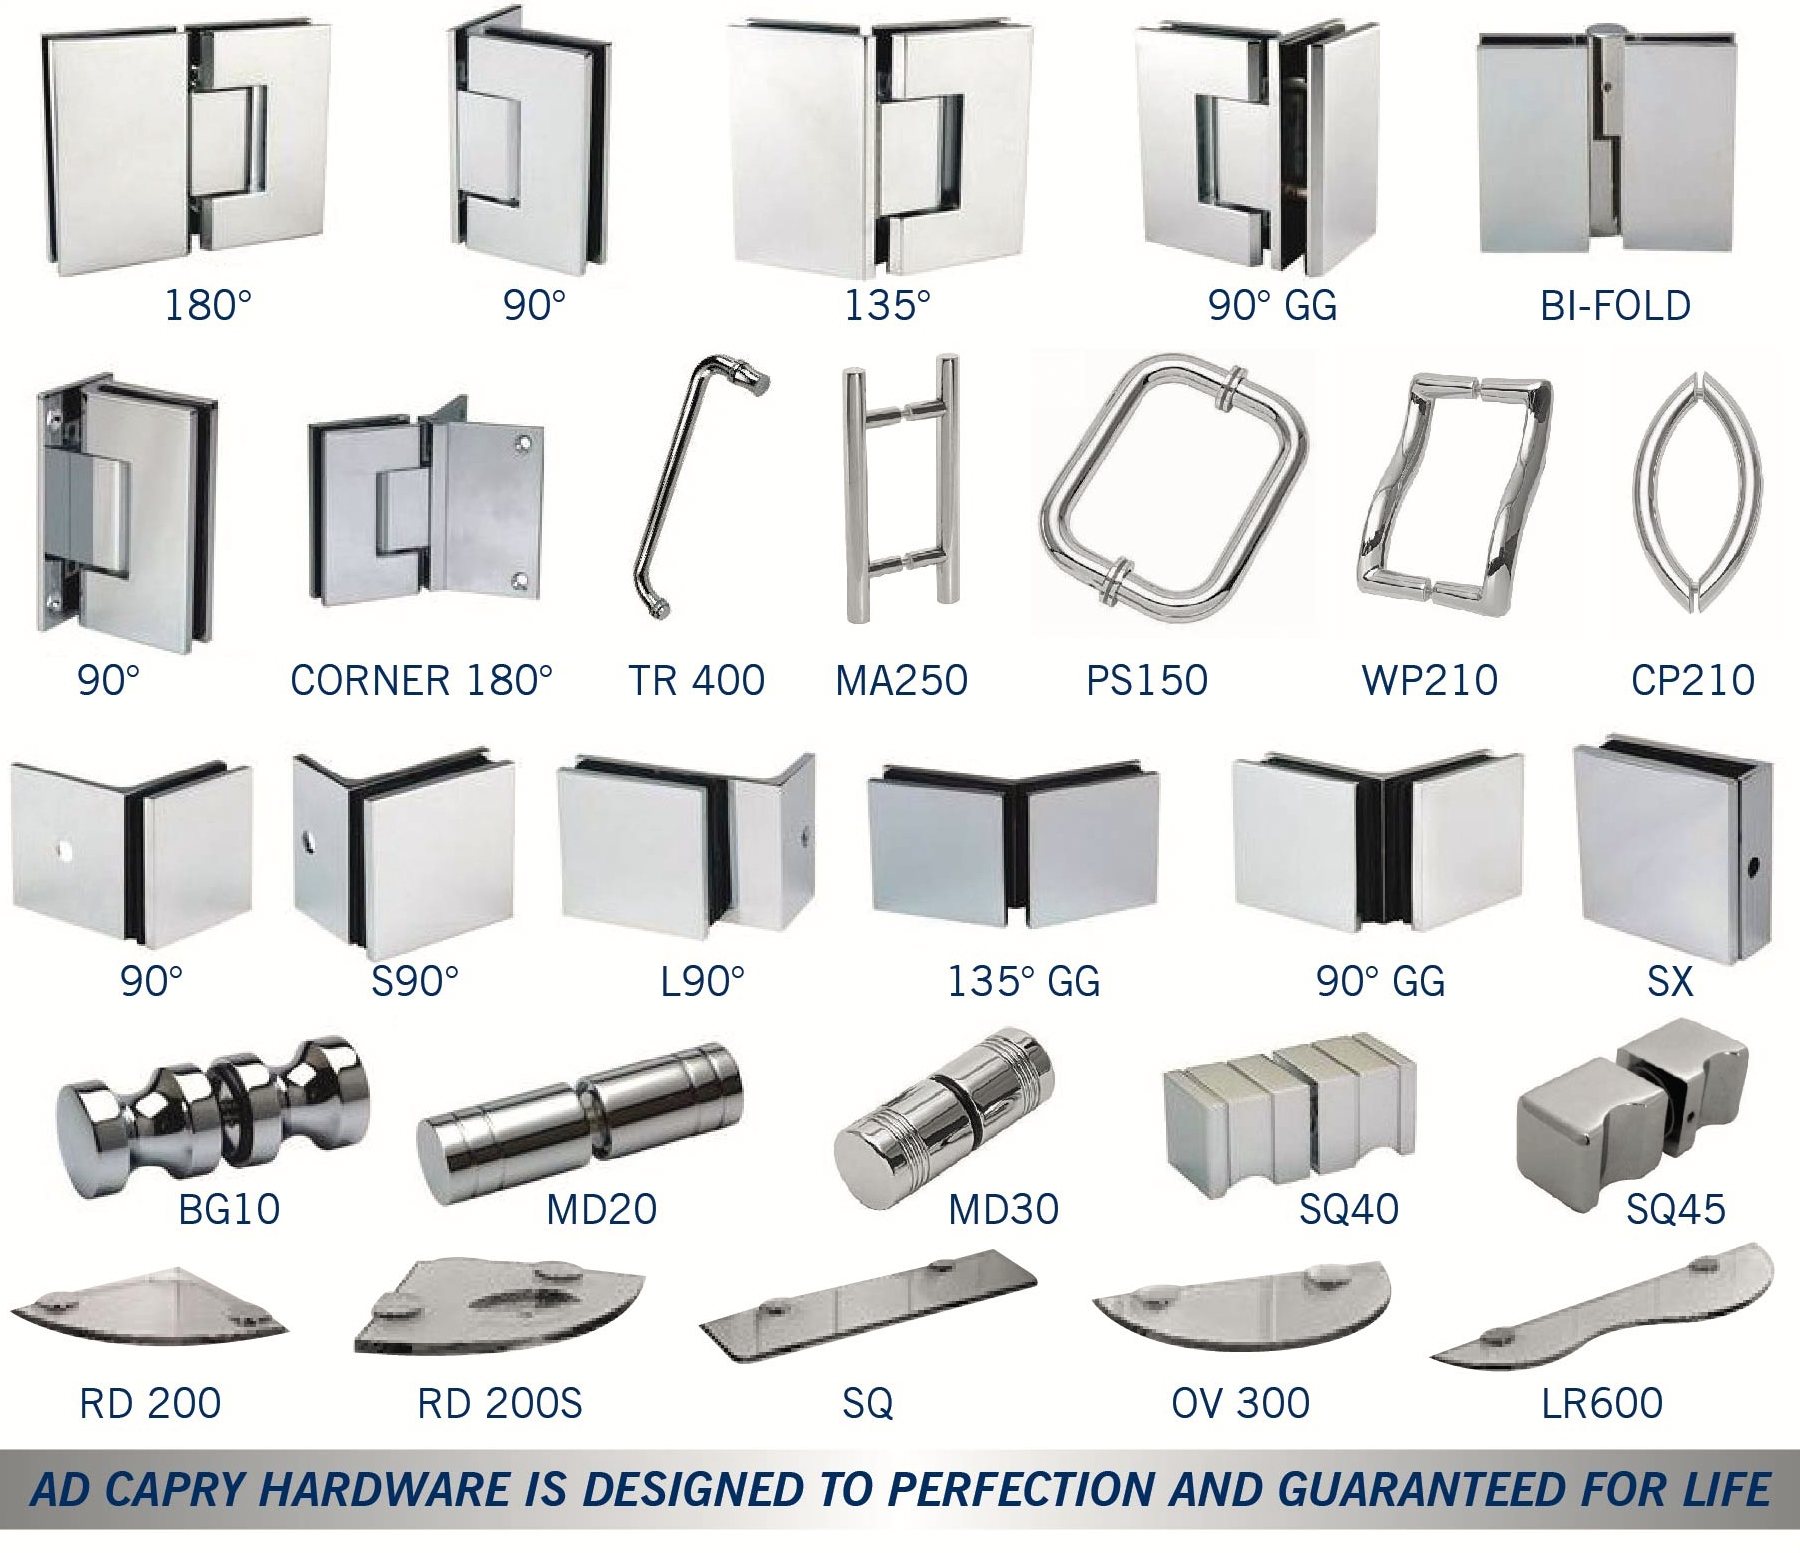 hardware_from_brochure - Copy